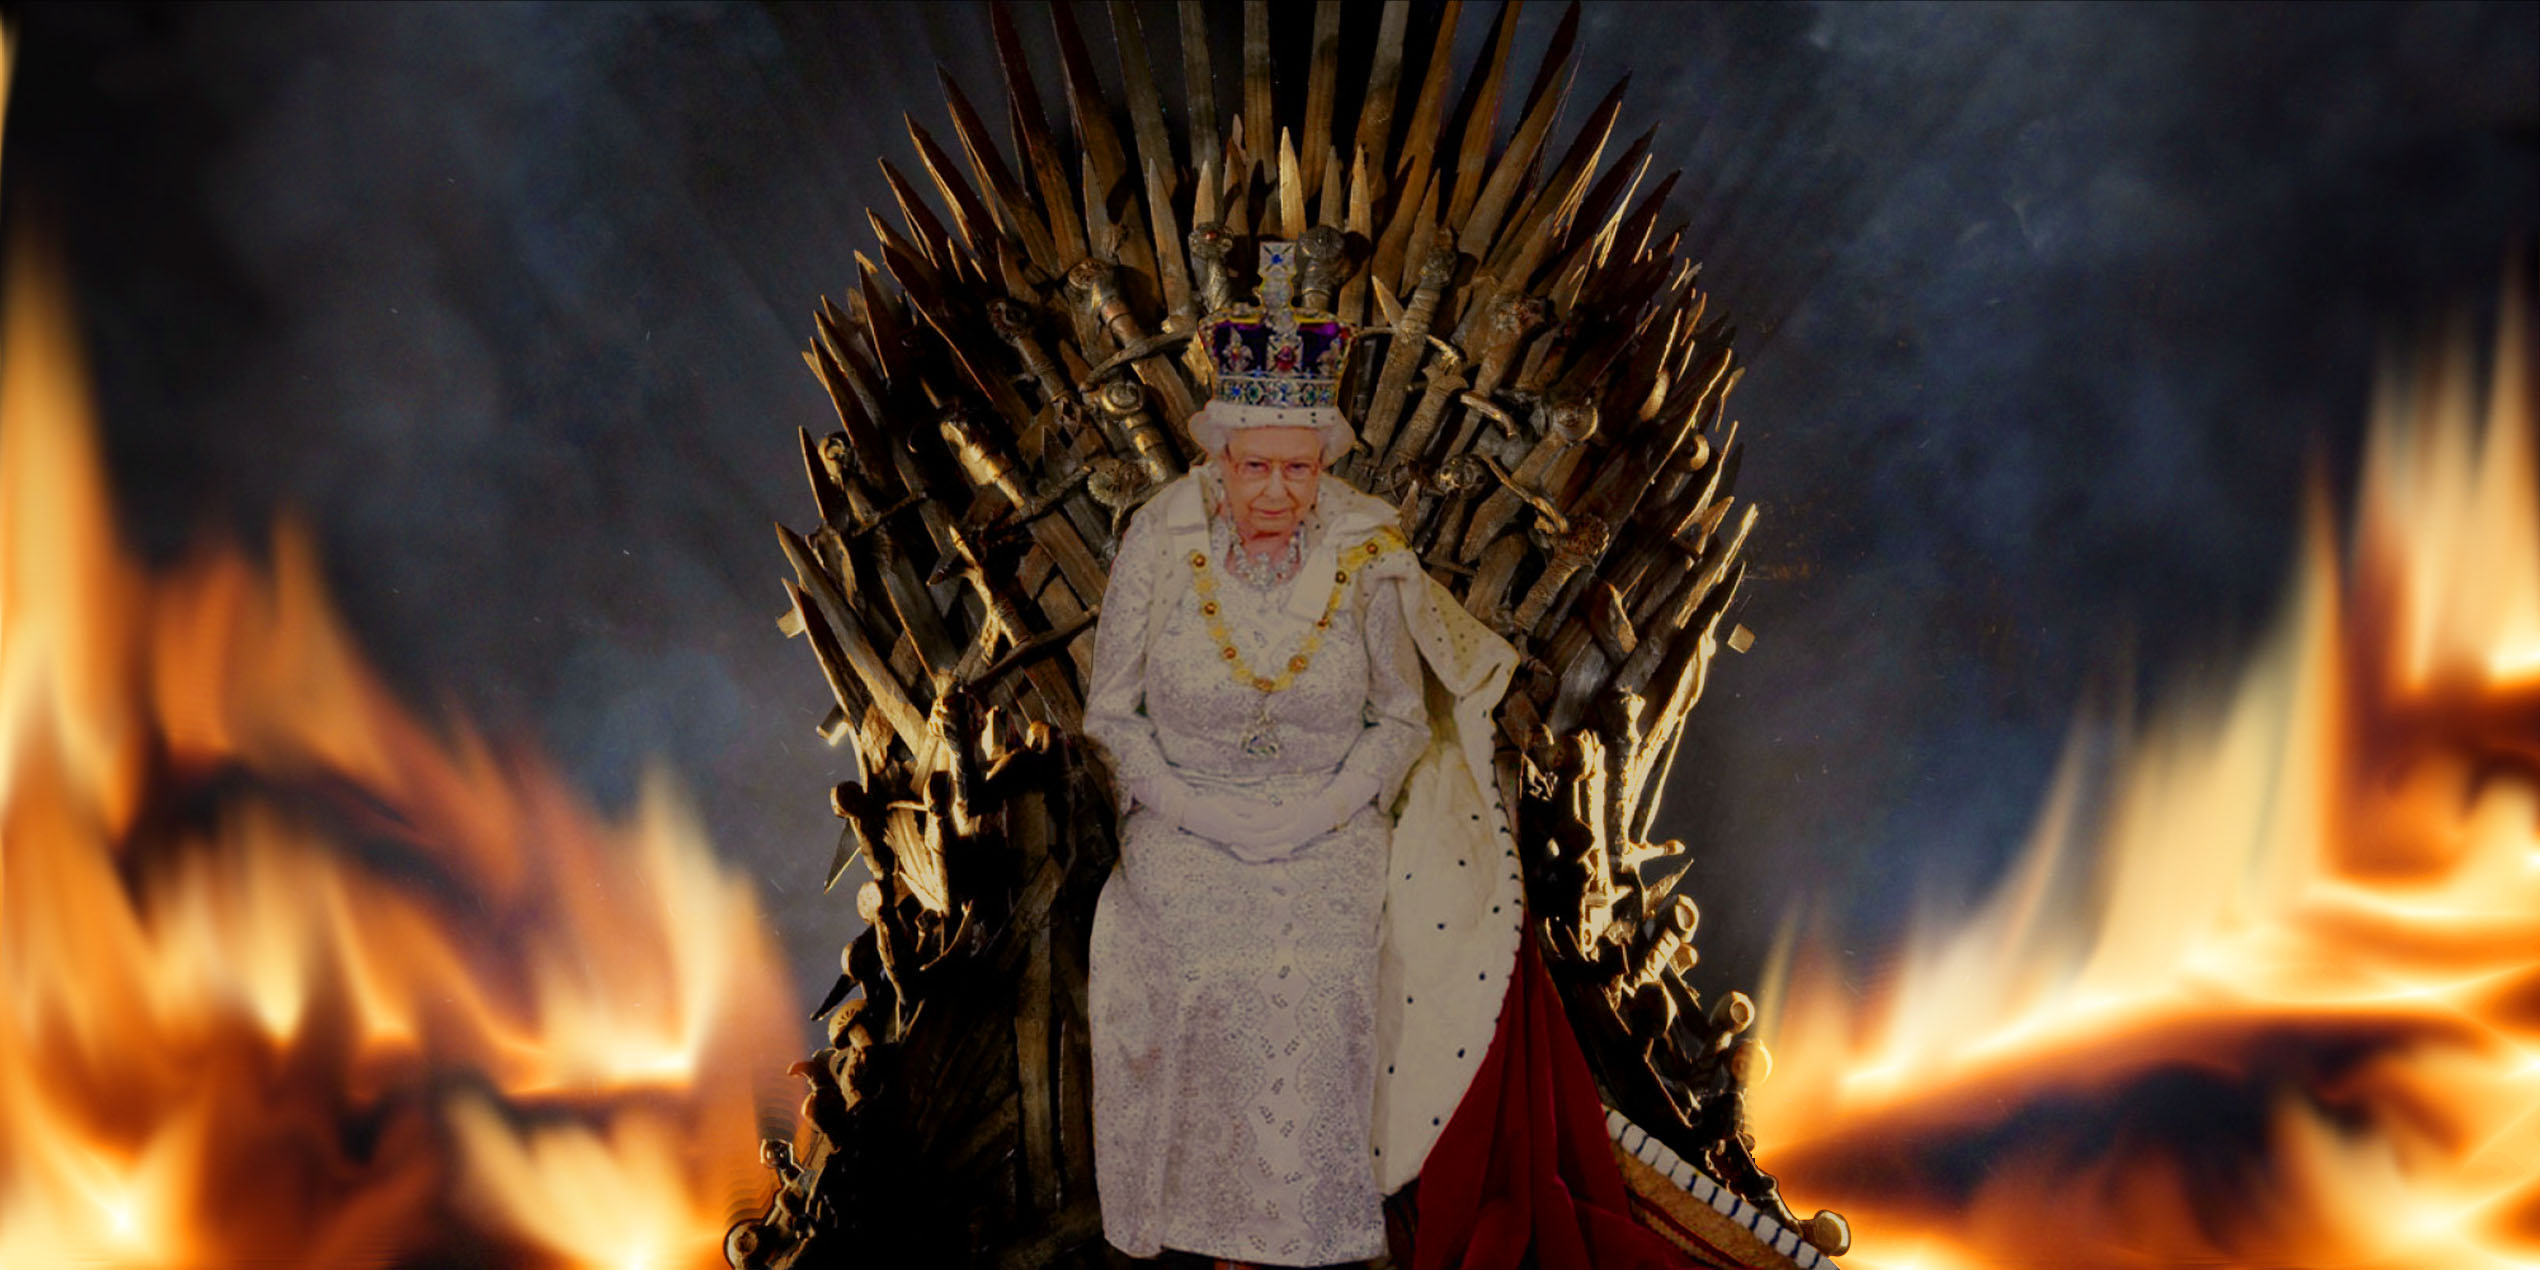 Queen Elizabeth on the Iron Throne  The Ballads Of Irving